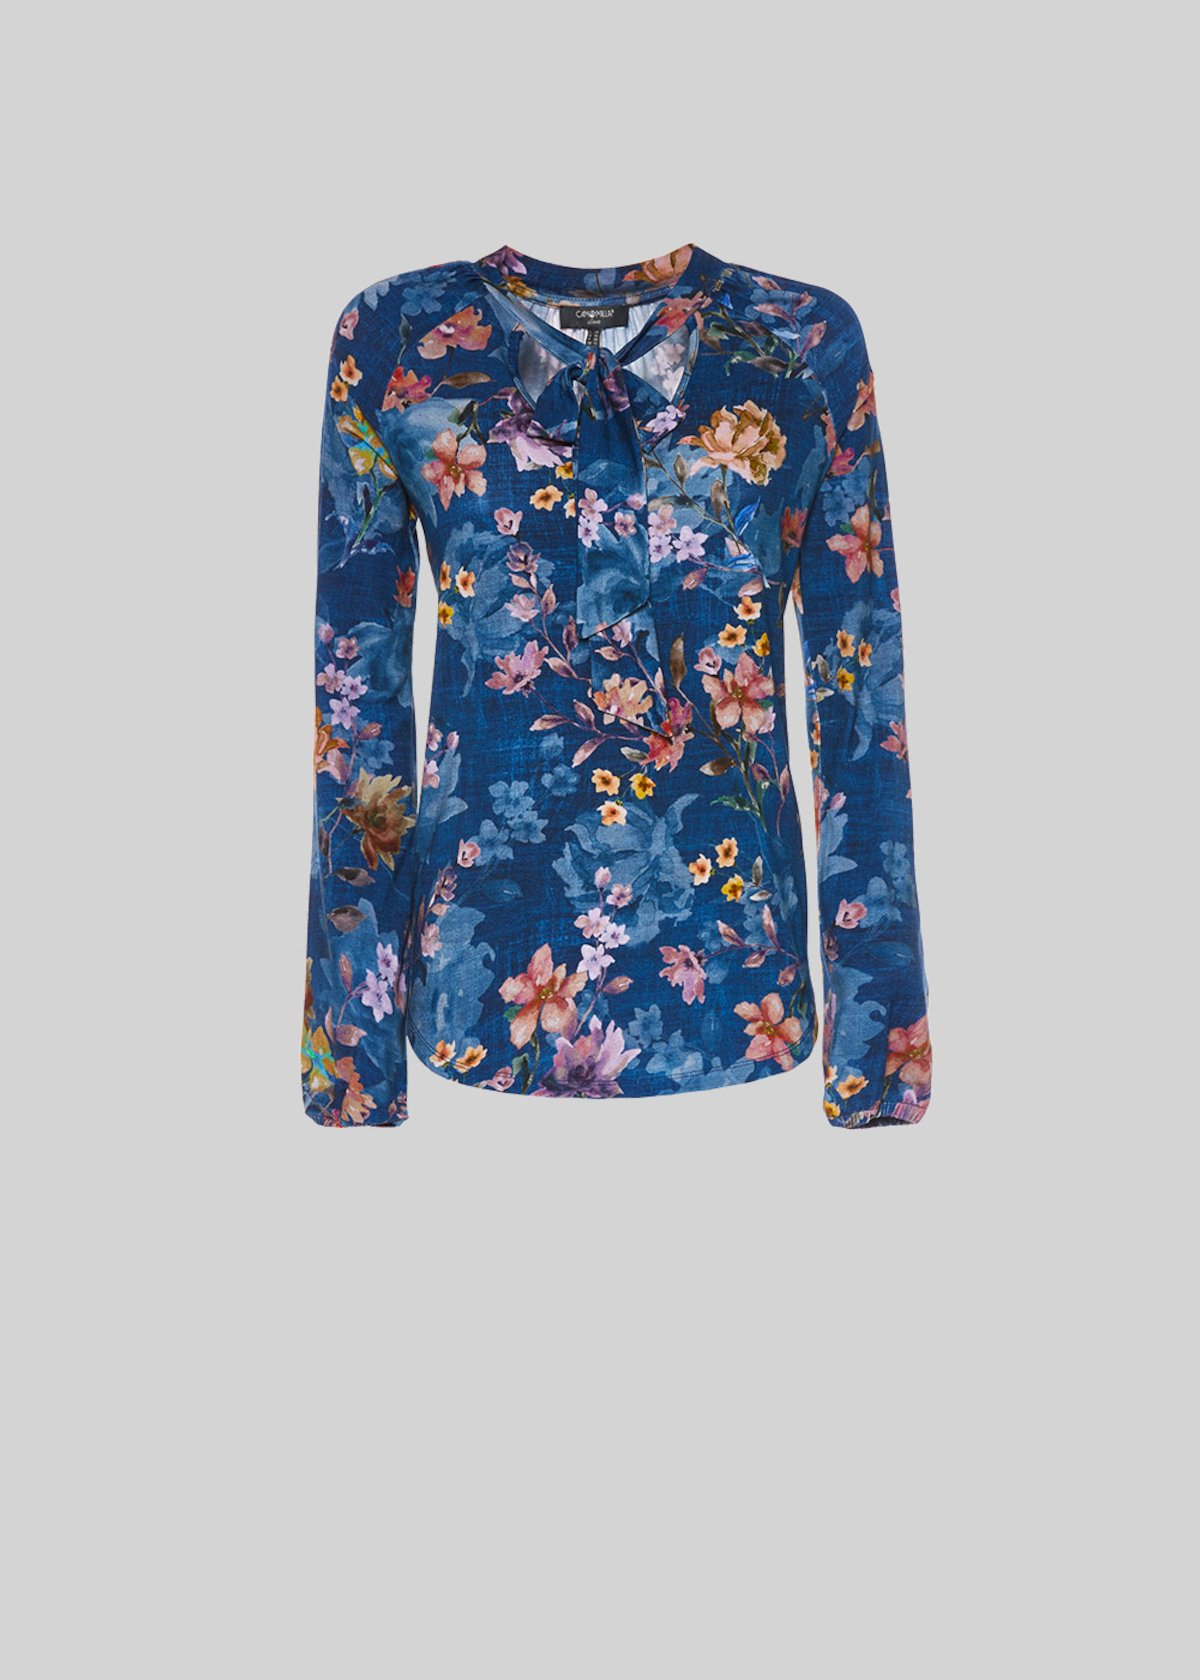 Shaggy jersey flower printed t-shirt - Medium Blue\ Land\ Fantasia - Woman - Category image